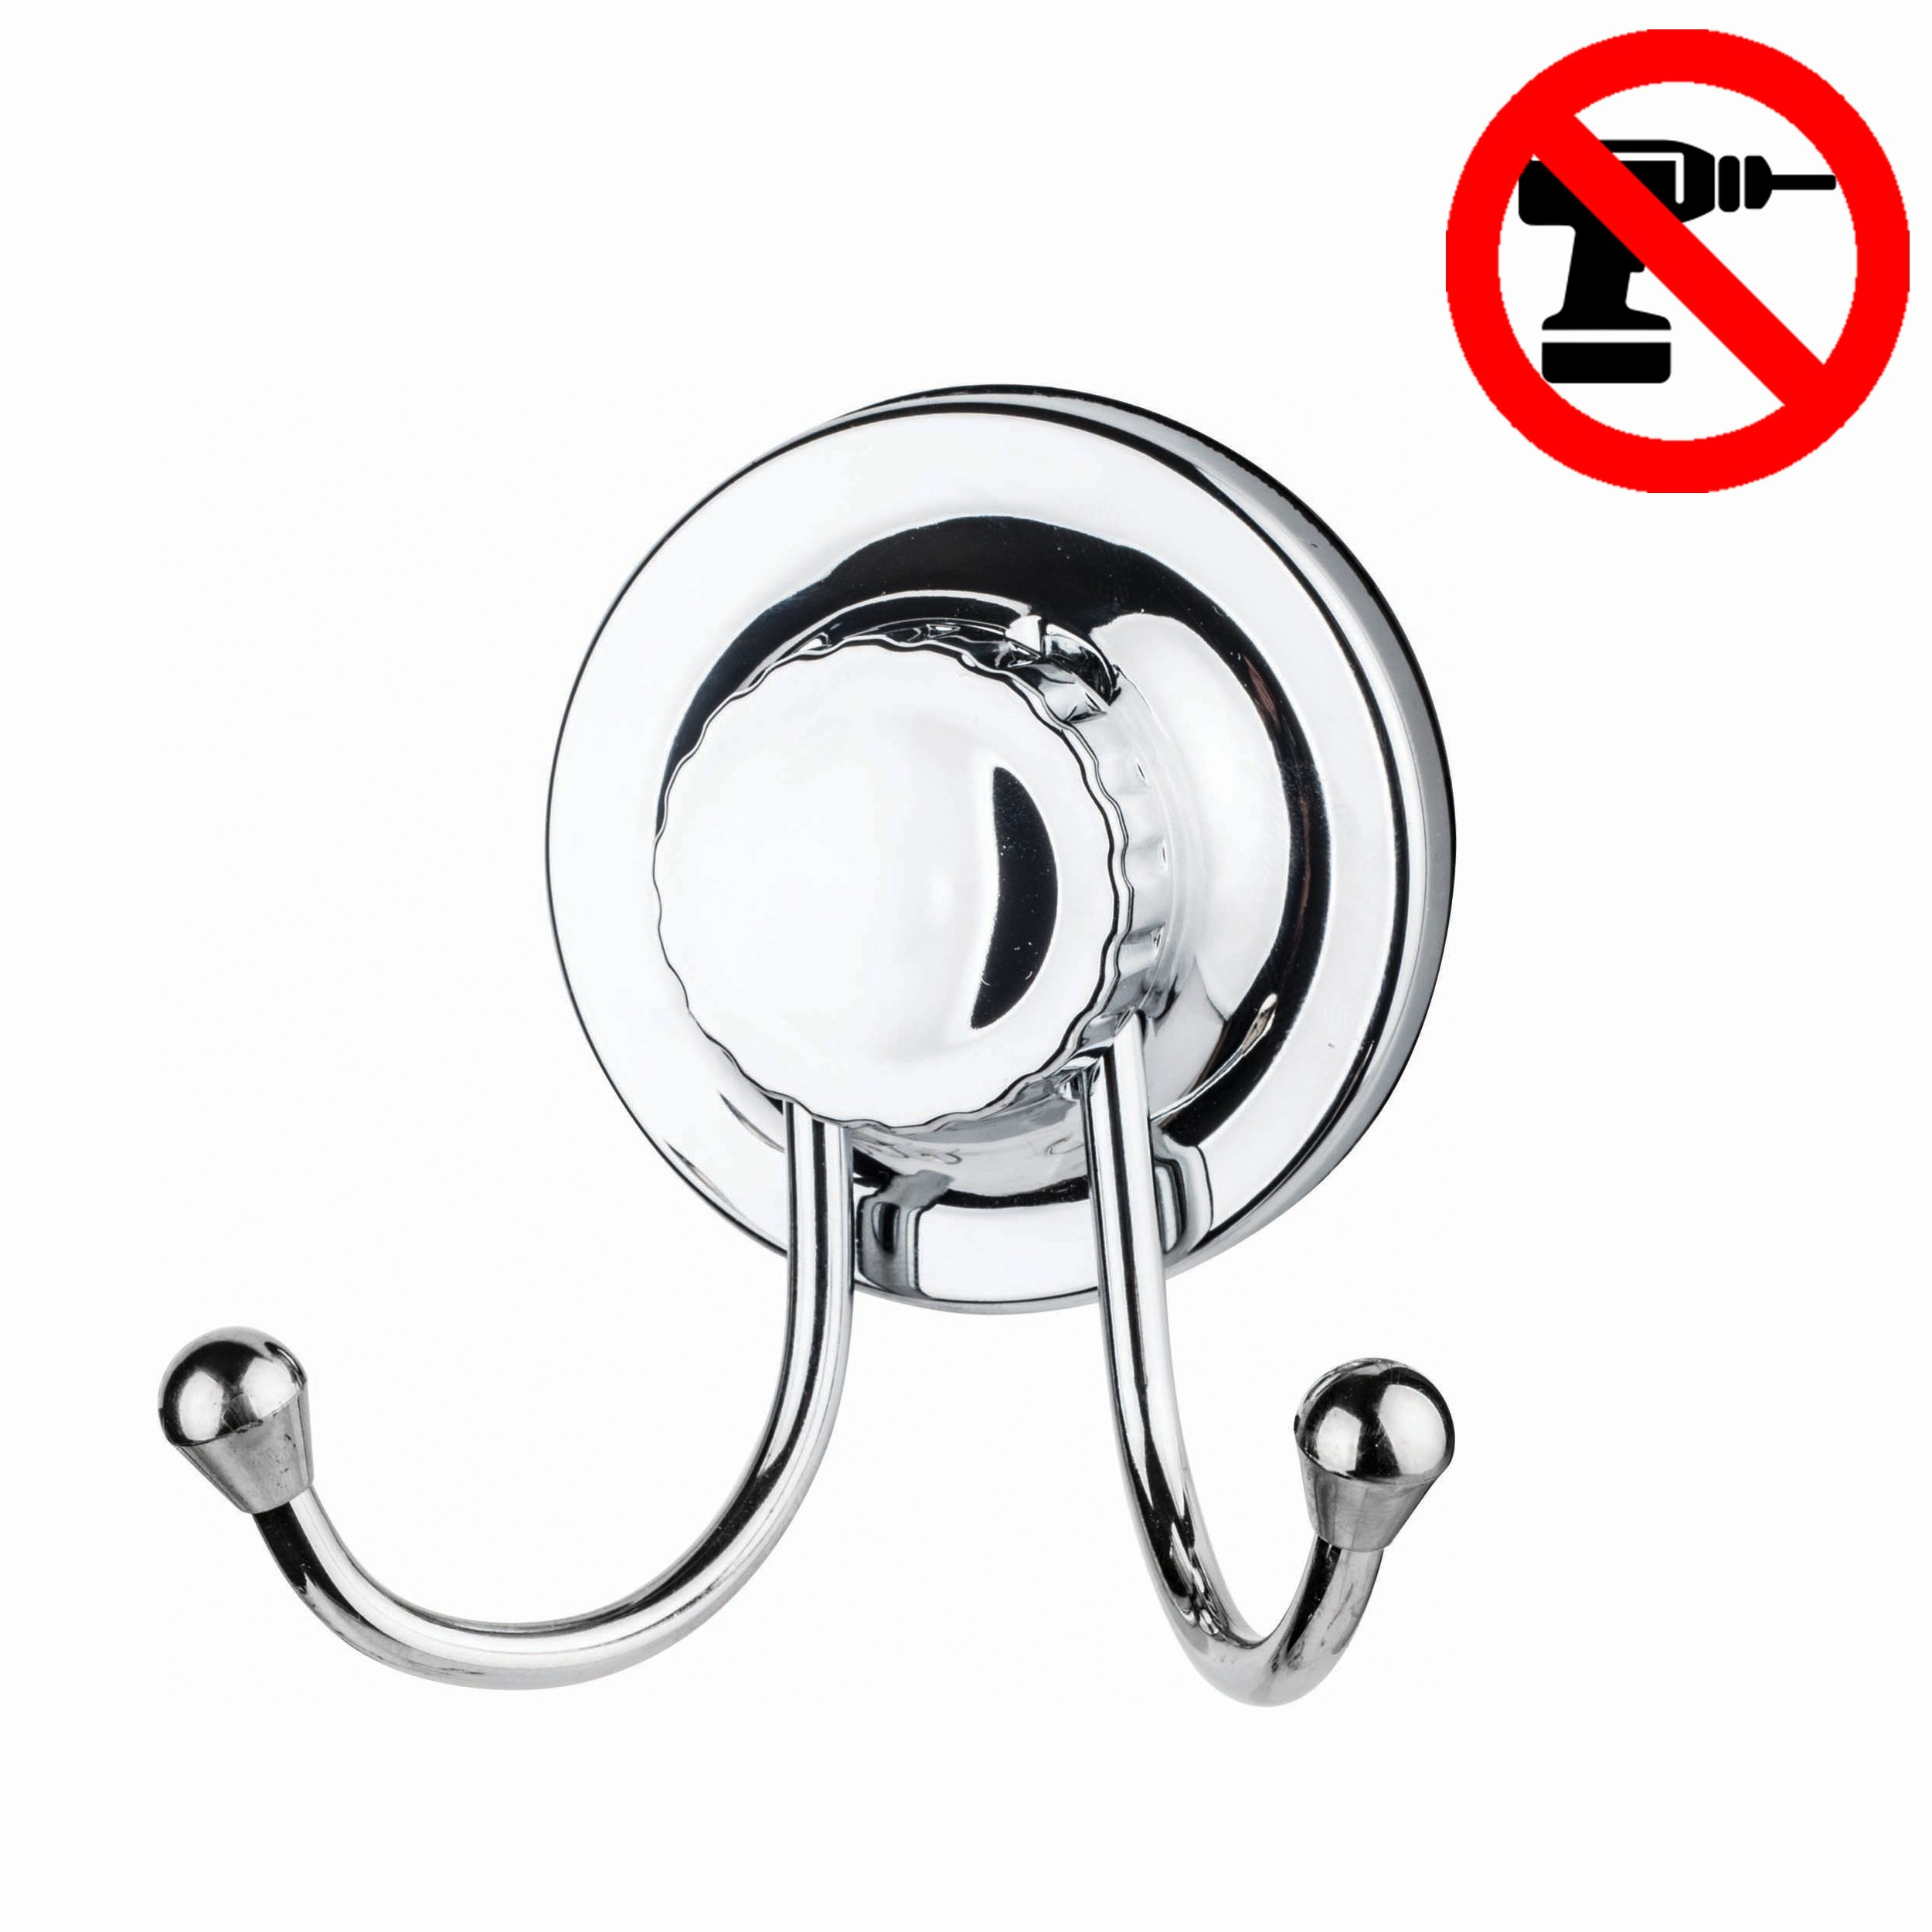 Lucena Suction Cups With Hooks Powerful Rubber Very Strong Heavy Duty For Towel Bathroom Kitchen Hanger - Double Hanger